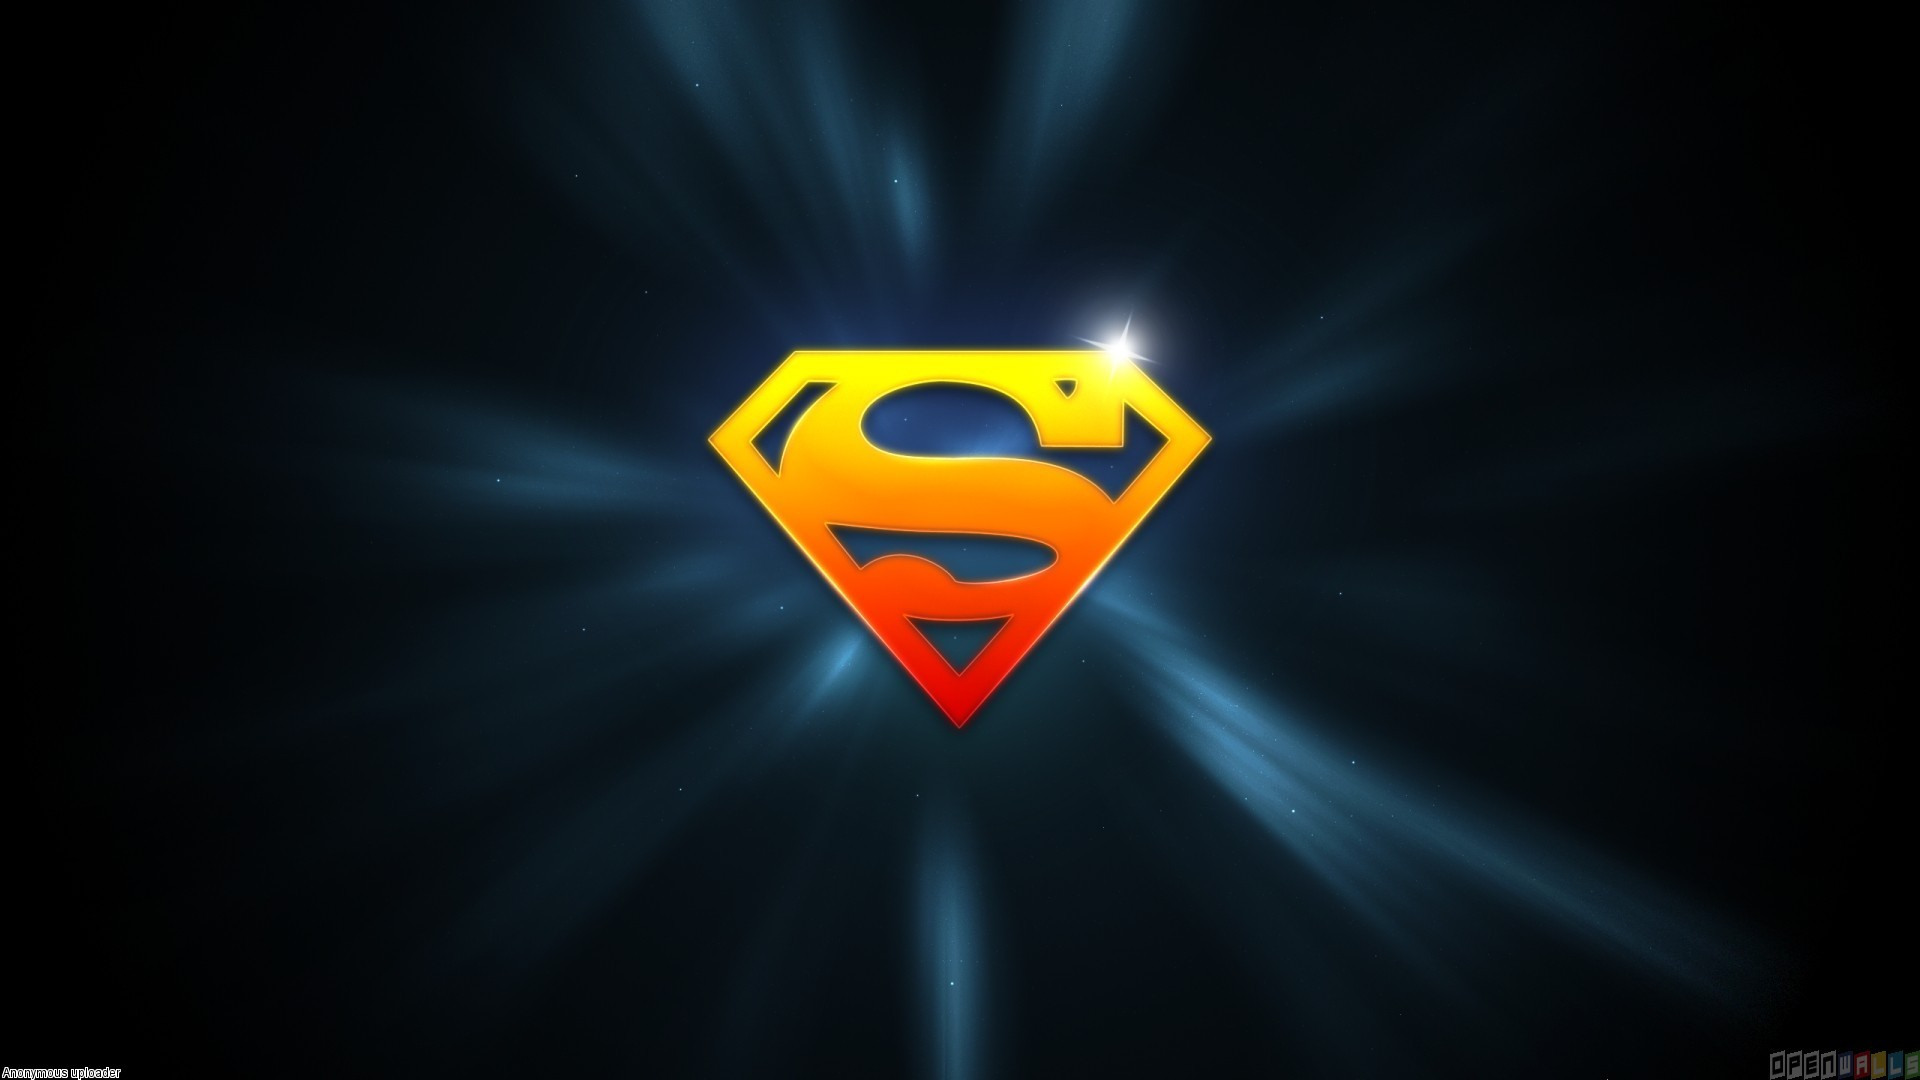 Superman Cool Image Hd